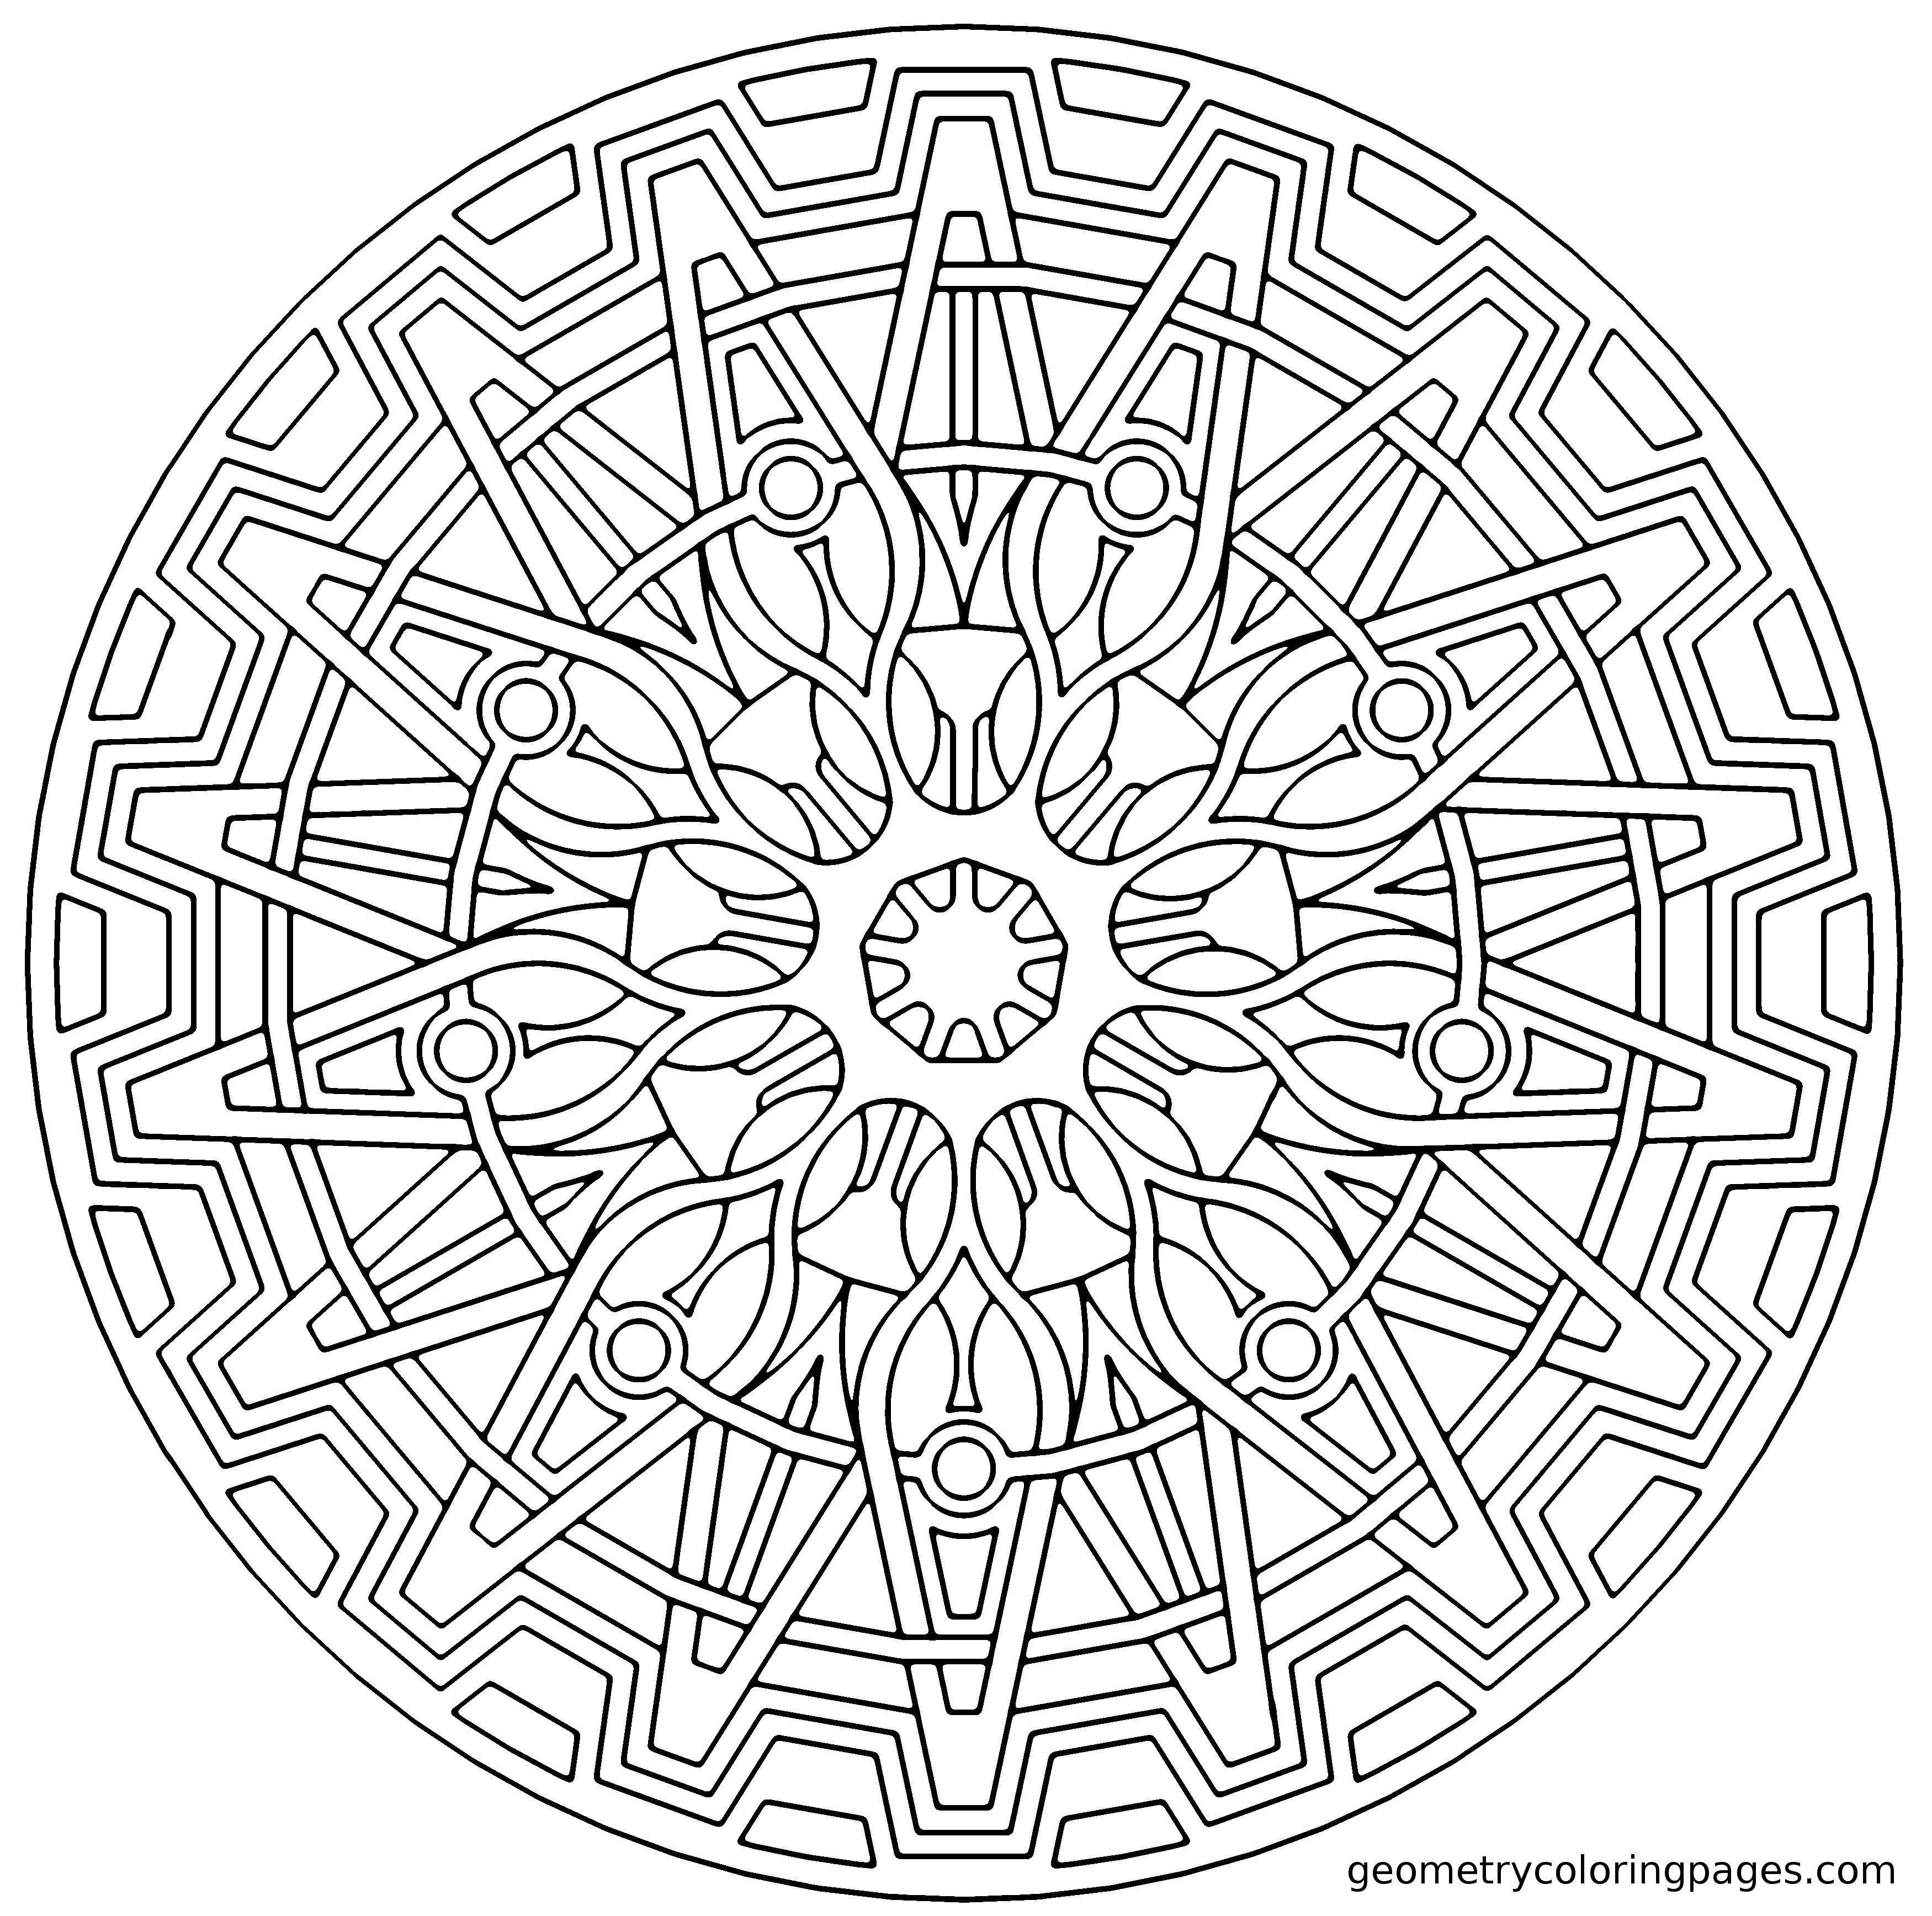 Tons Of Amazing Geometry Coloring Pages Free For Middle